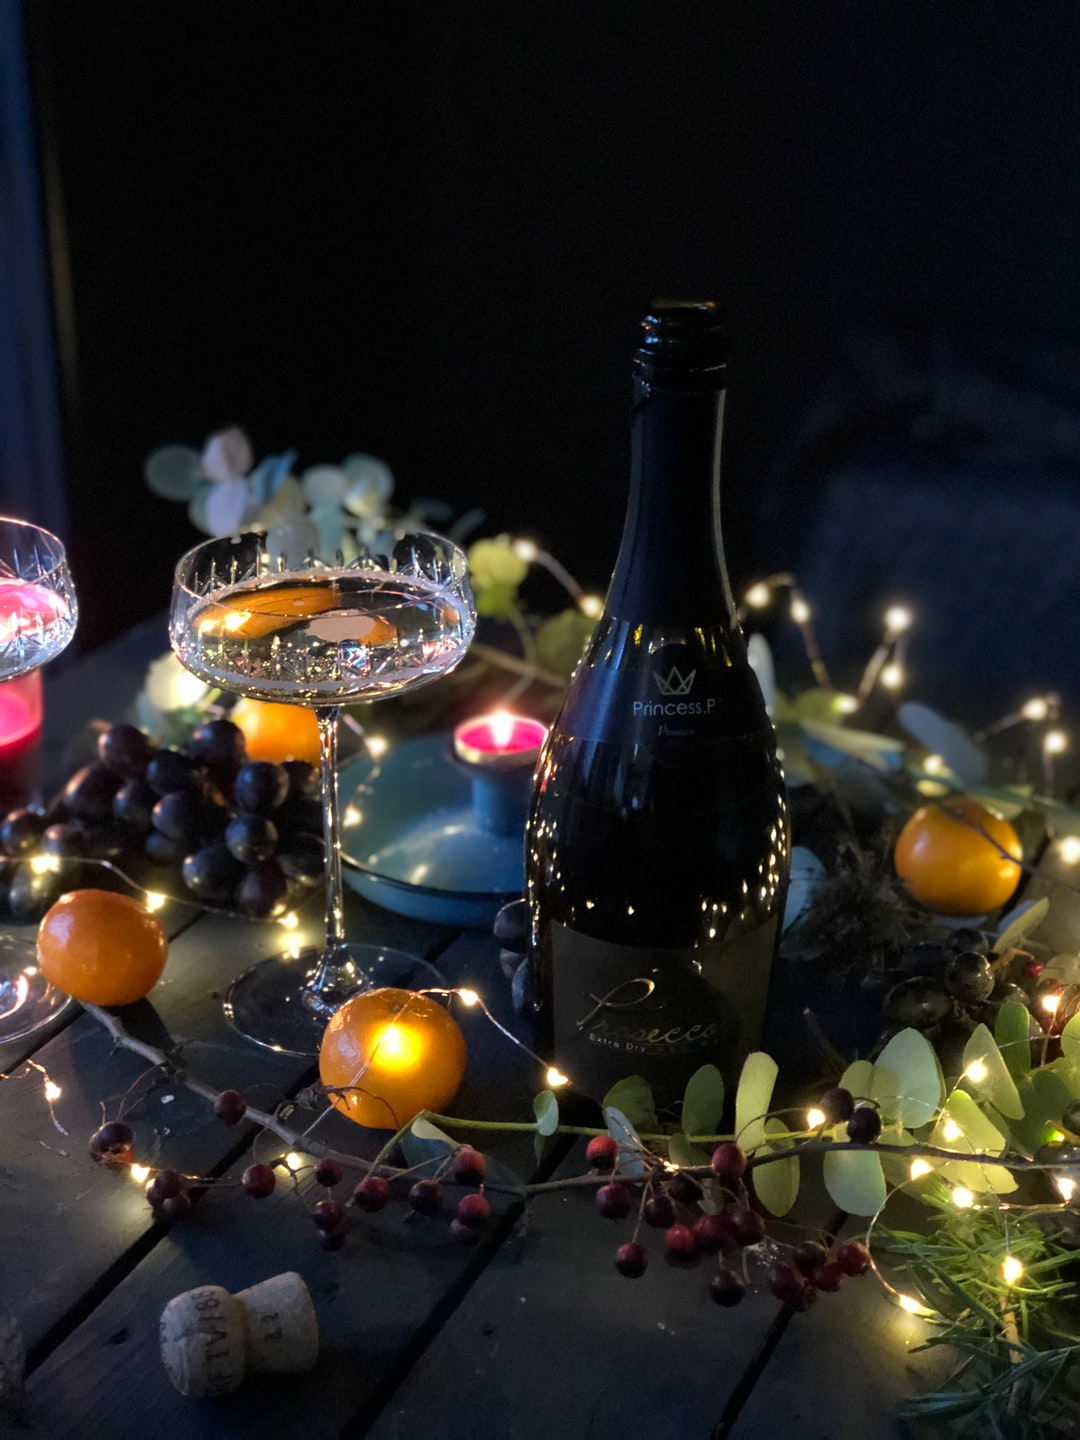 A bottle of Prosecco and a coupe on a sparkling decorated Christmas table